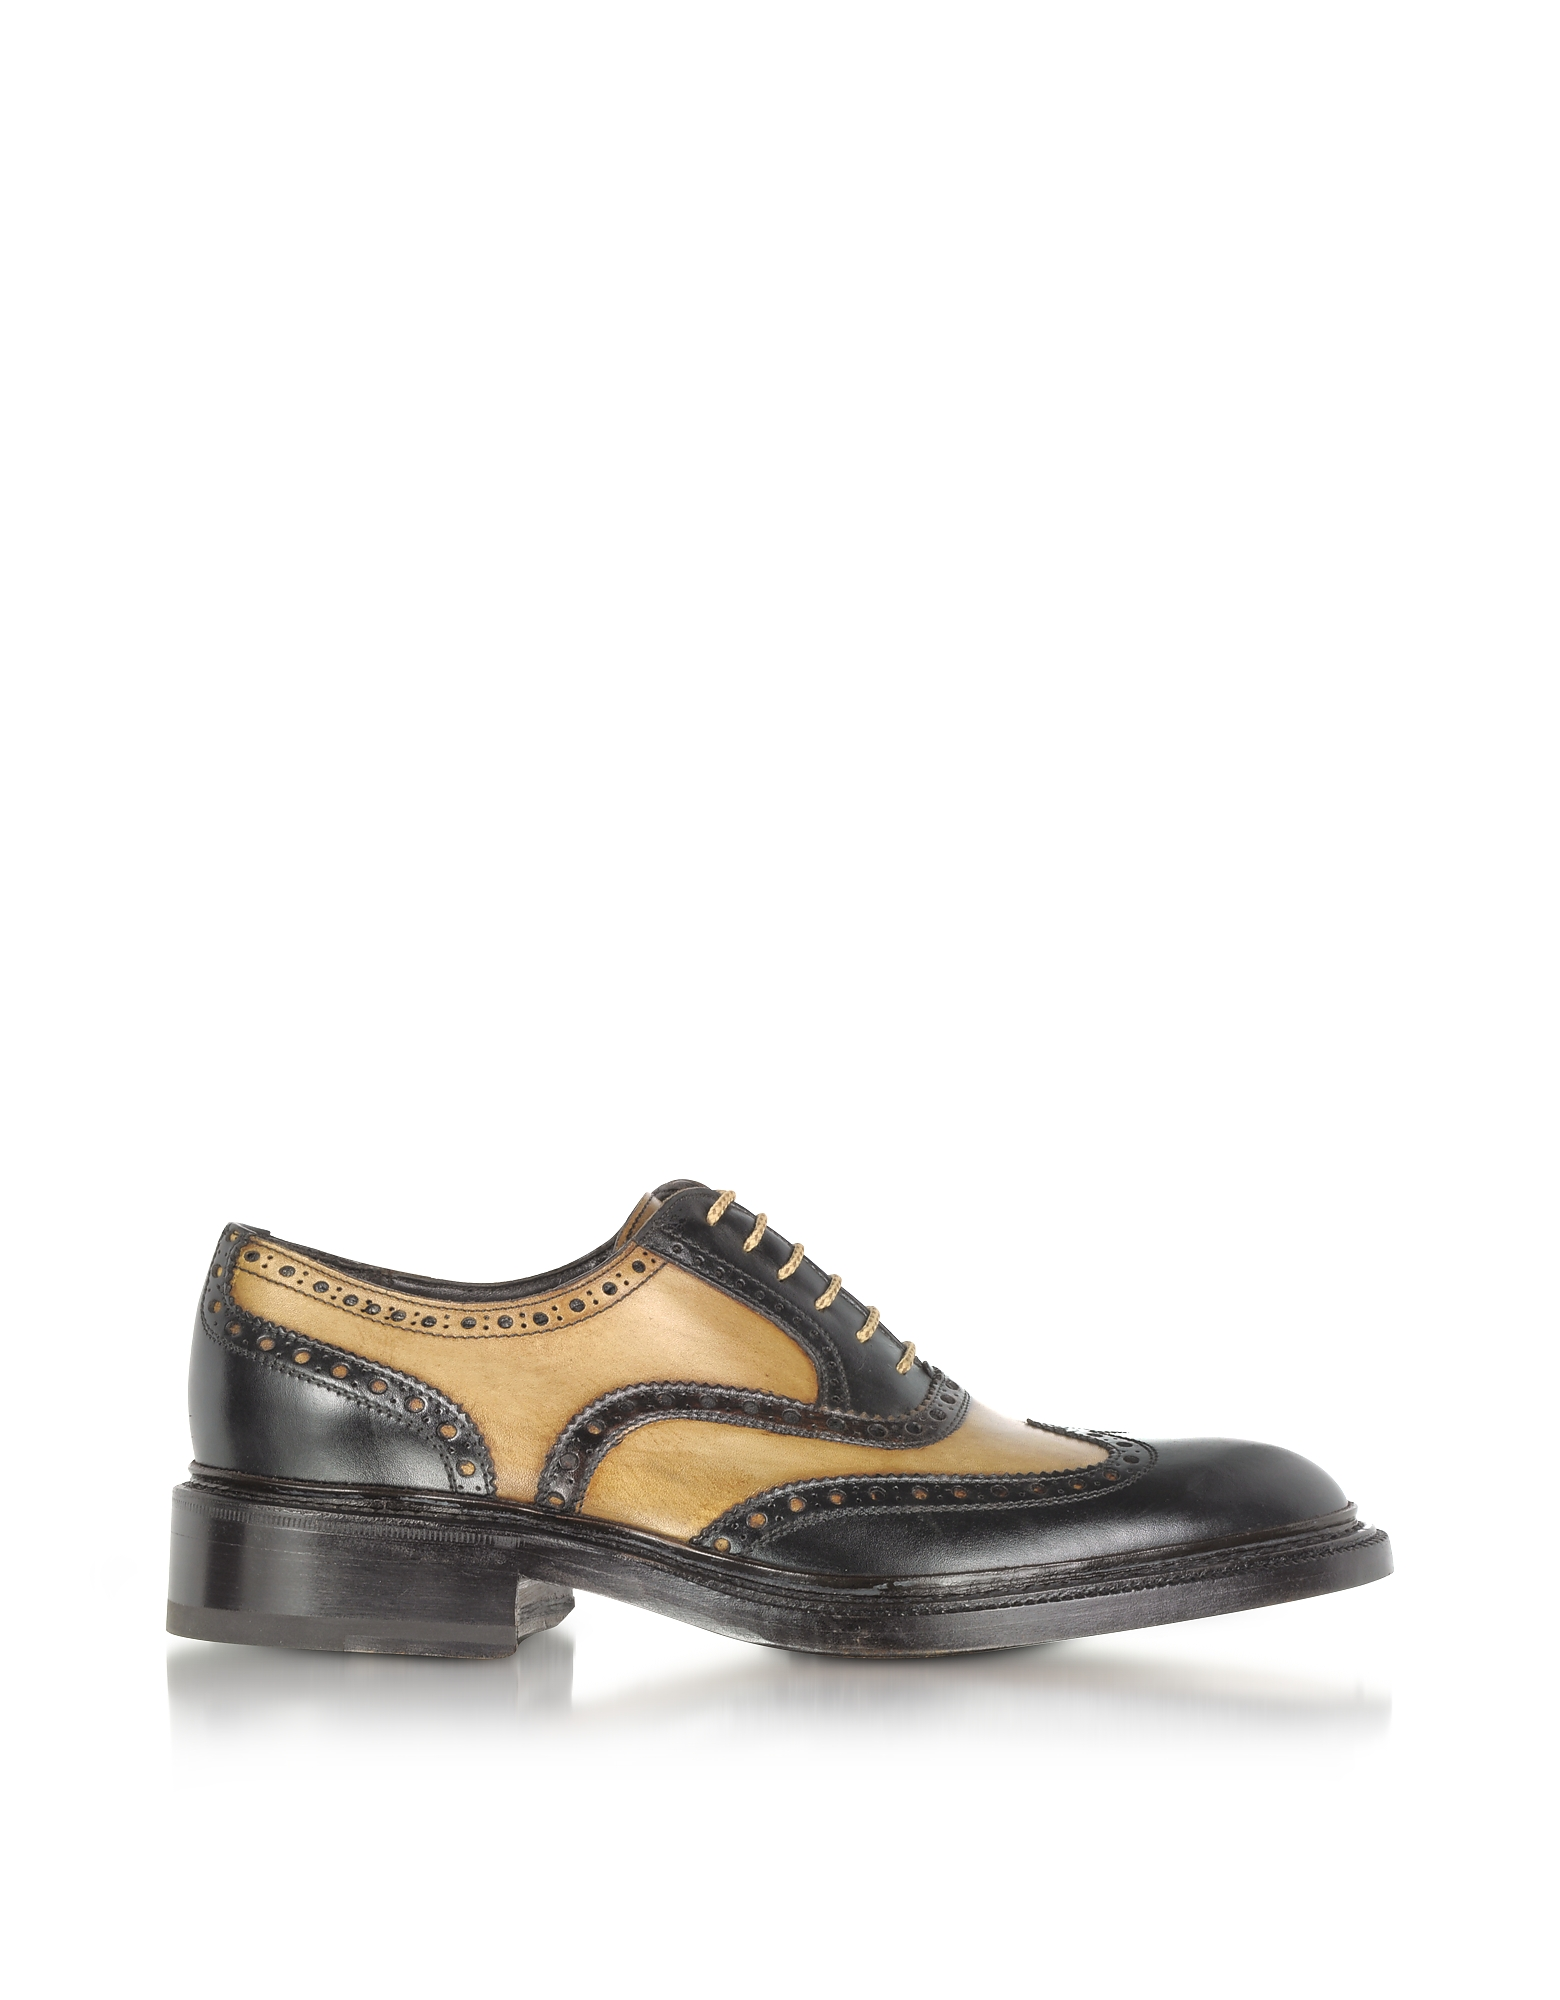 1920s Fashion for Men Boardwalk Empire Forzieri  Shoes Italian Handcrafted Two-tone Wingtip Oxford Shoes $924.00 AT vintagedancer.com